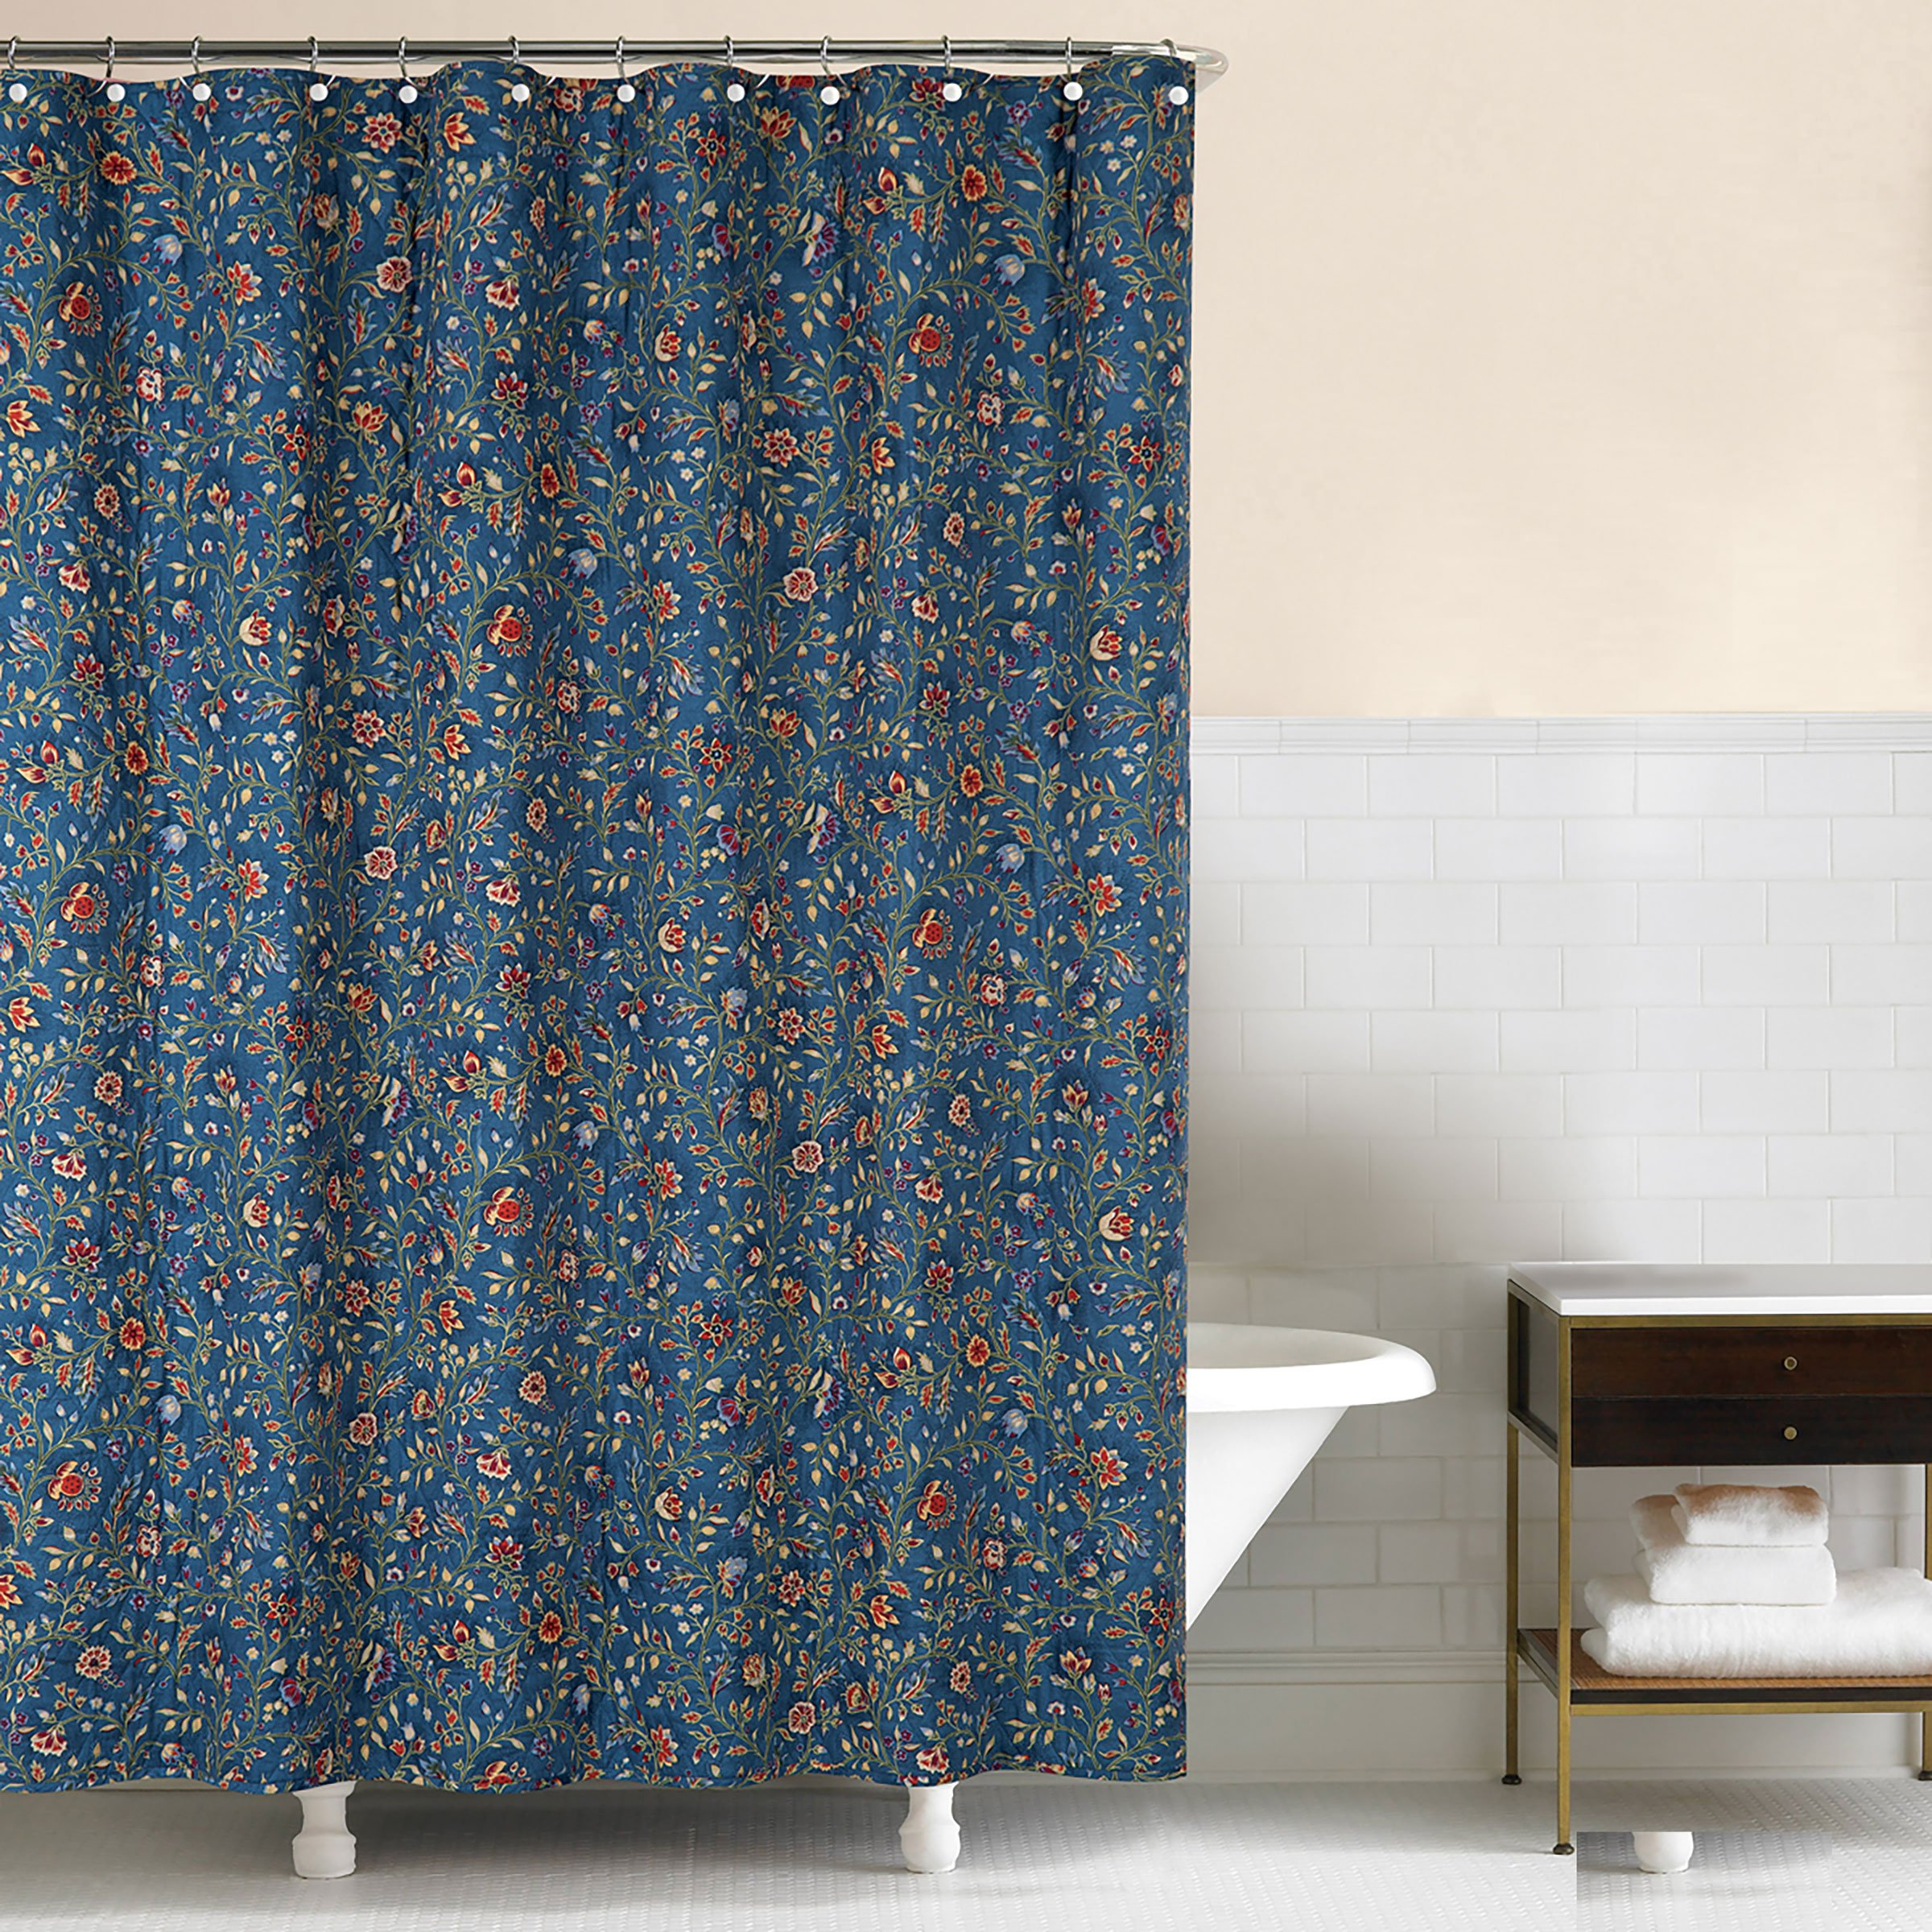 C&F Home, Williamsburg Wakefield Fabric Shower Curtain Blue, 72x72 by C&F Home